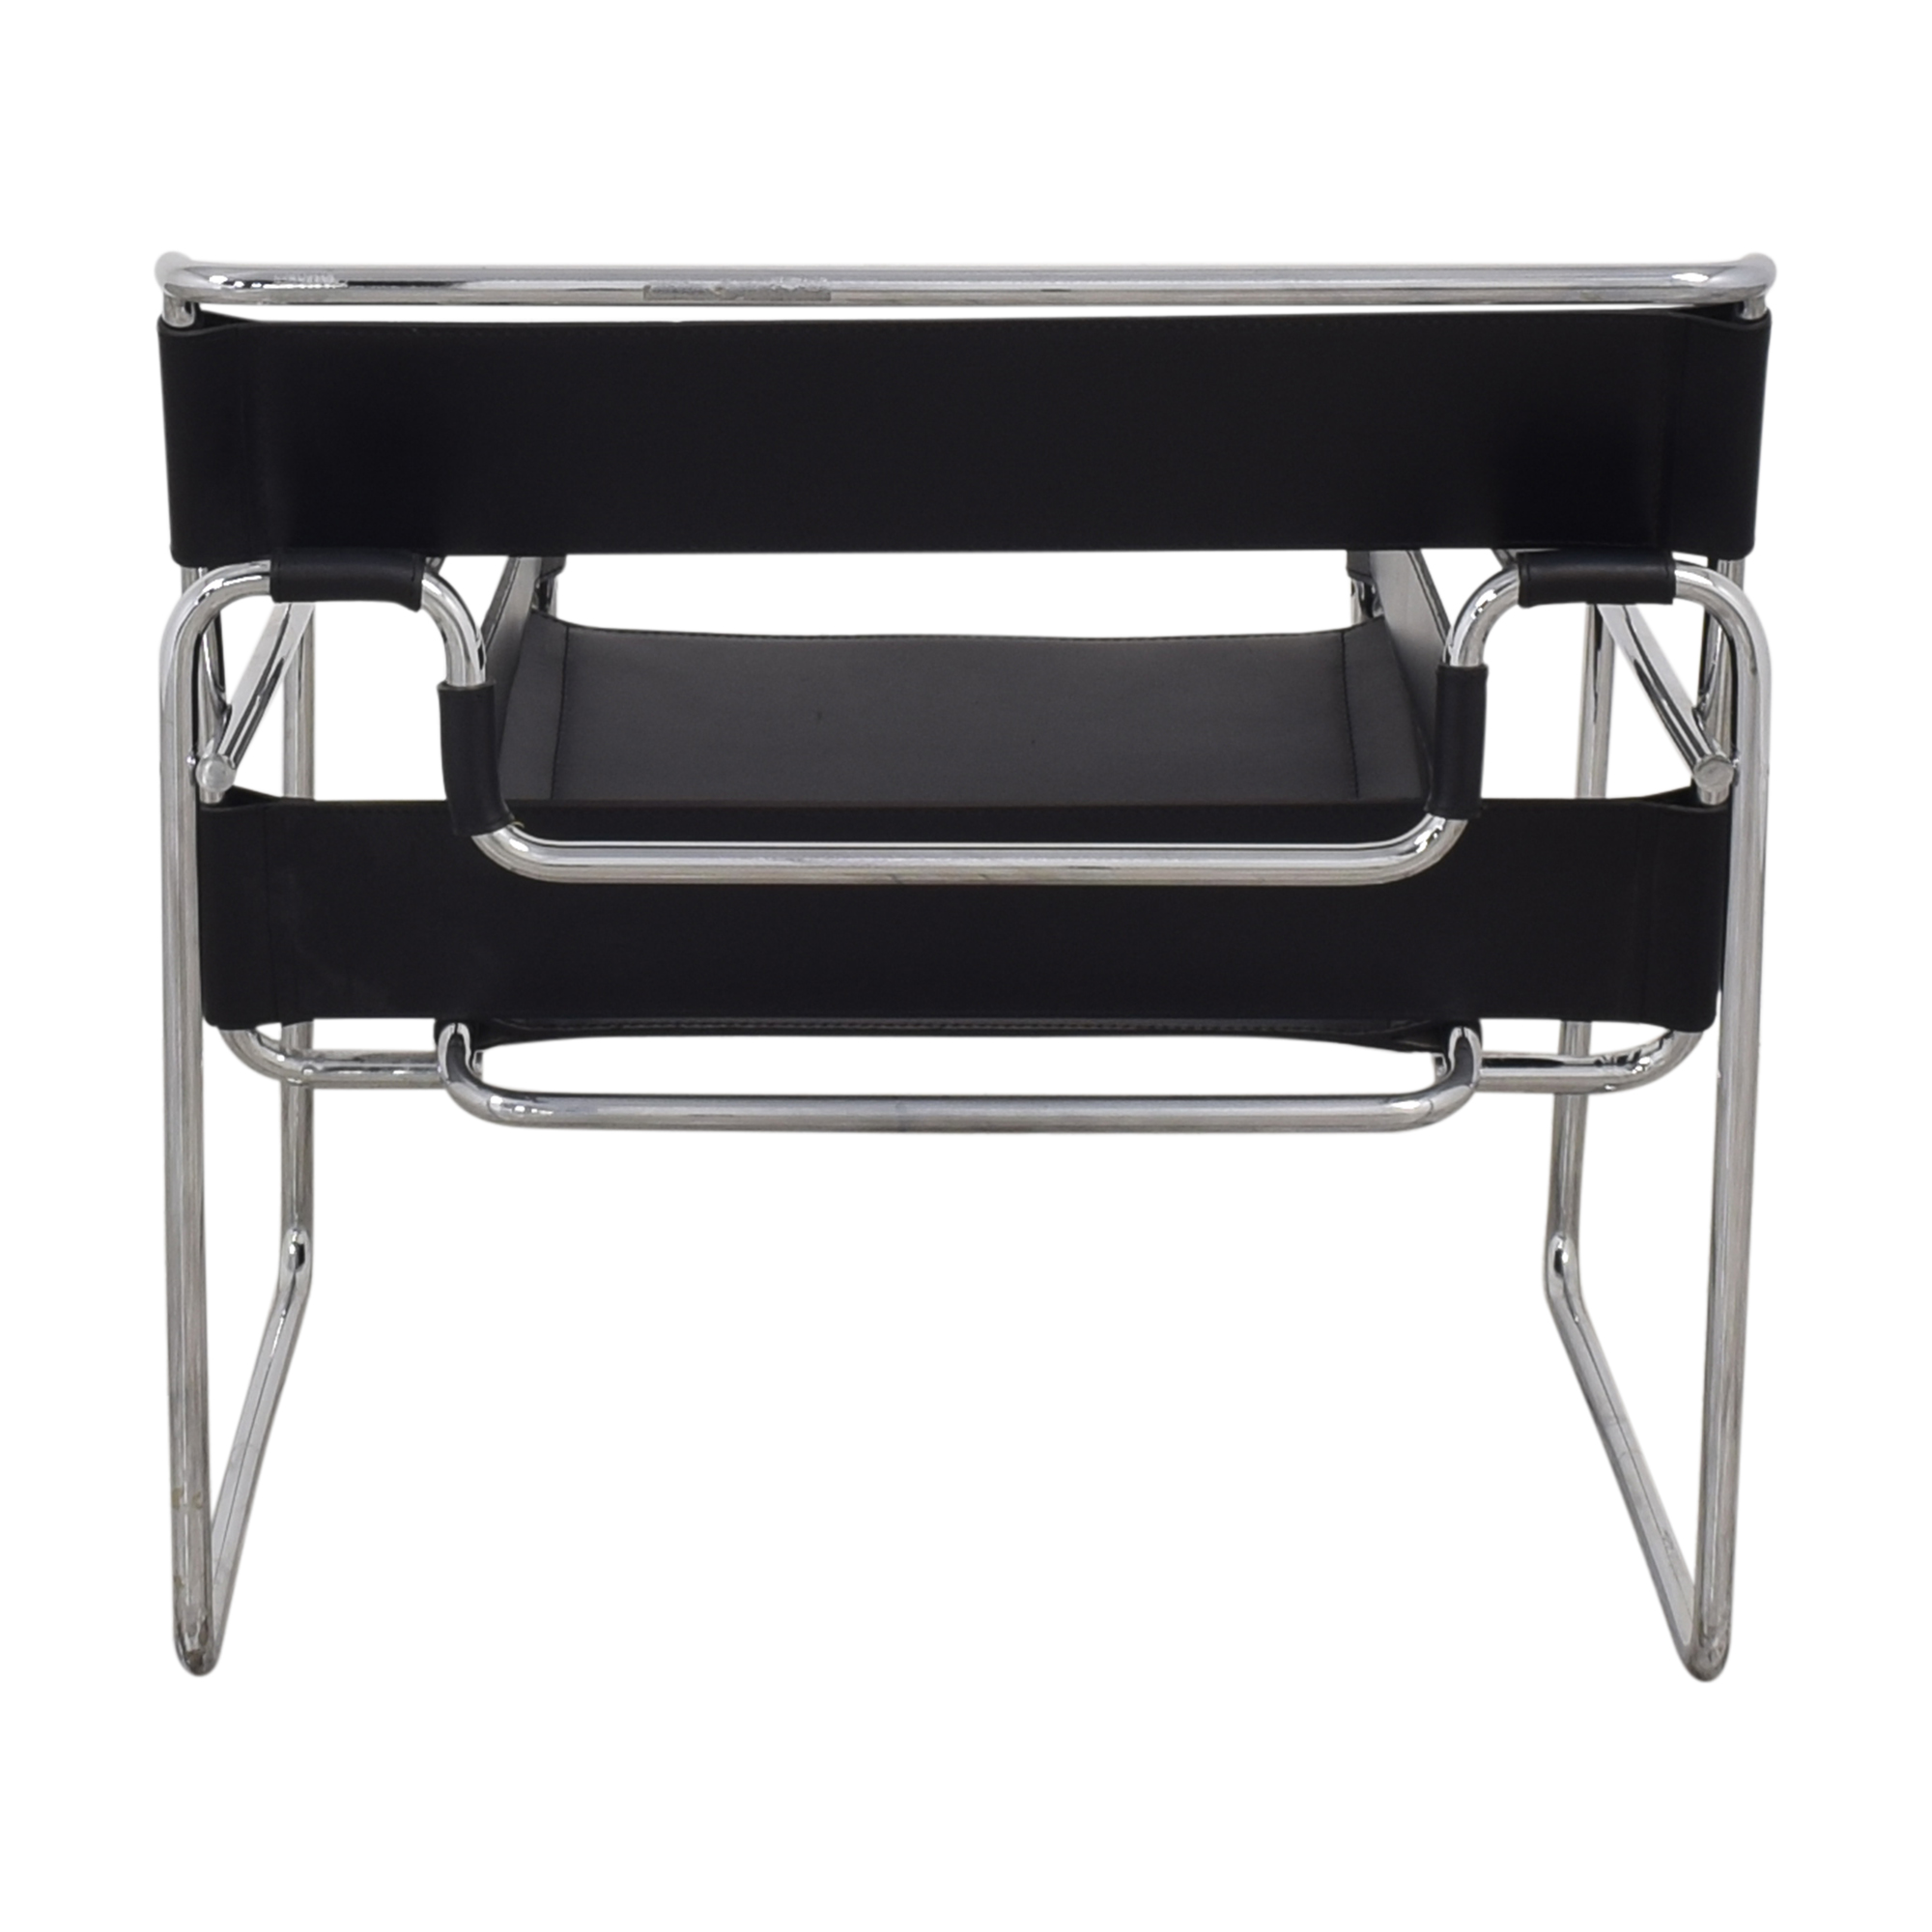 Knoll Knoll Marcel Breuer Wassily Chair second hand